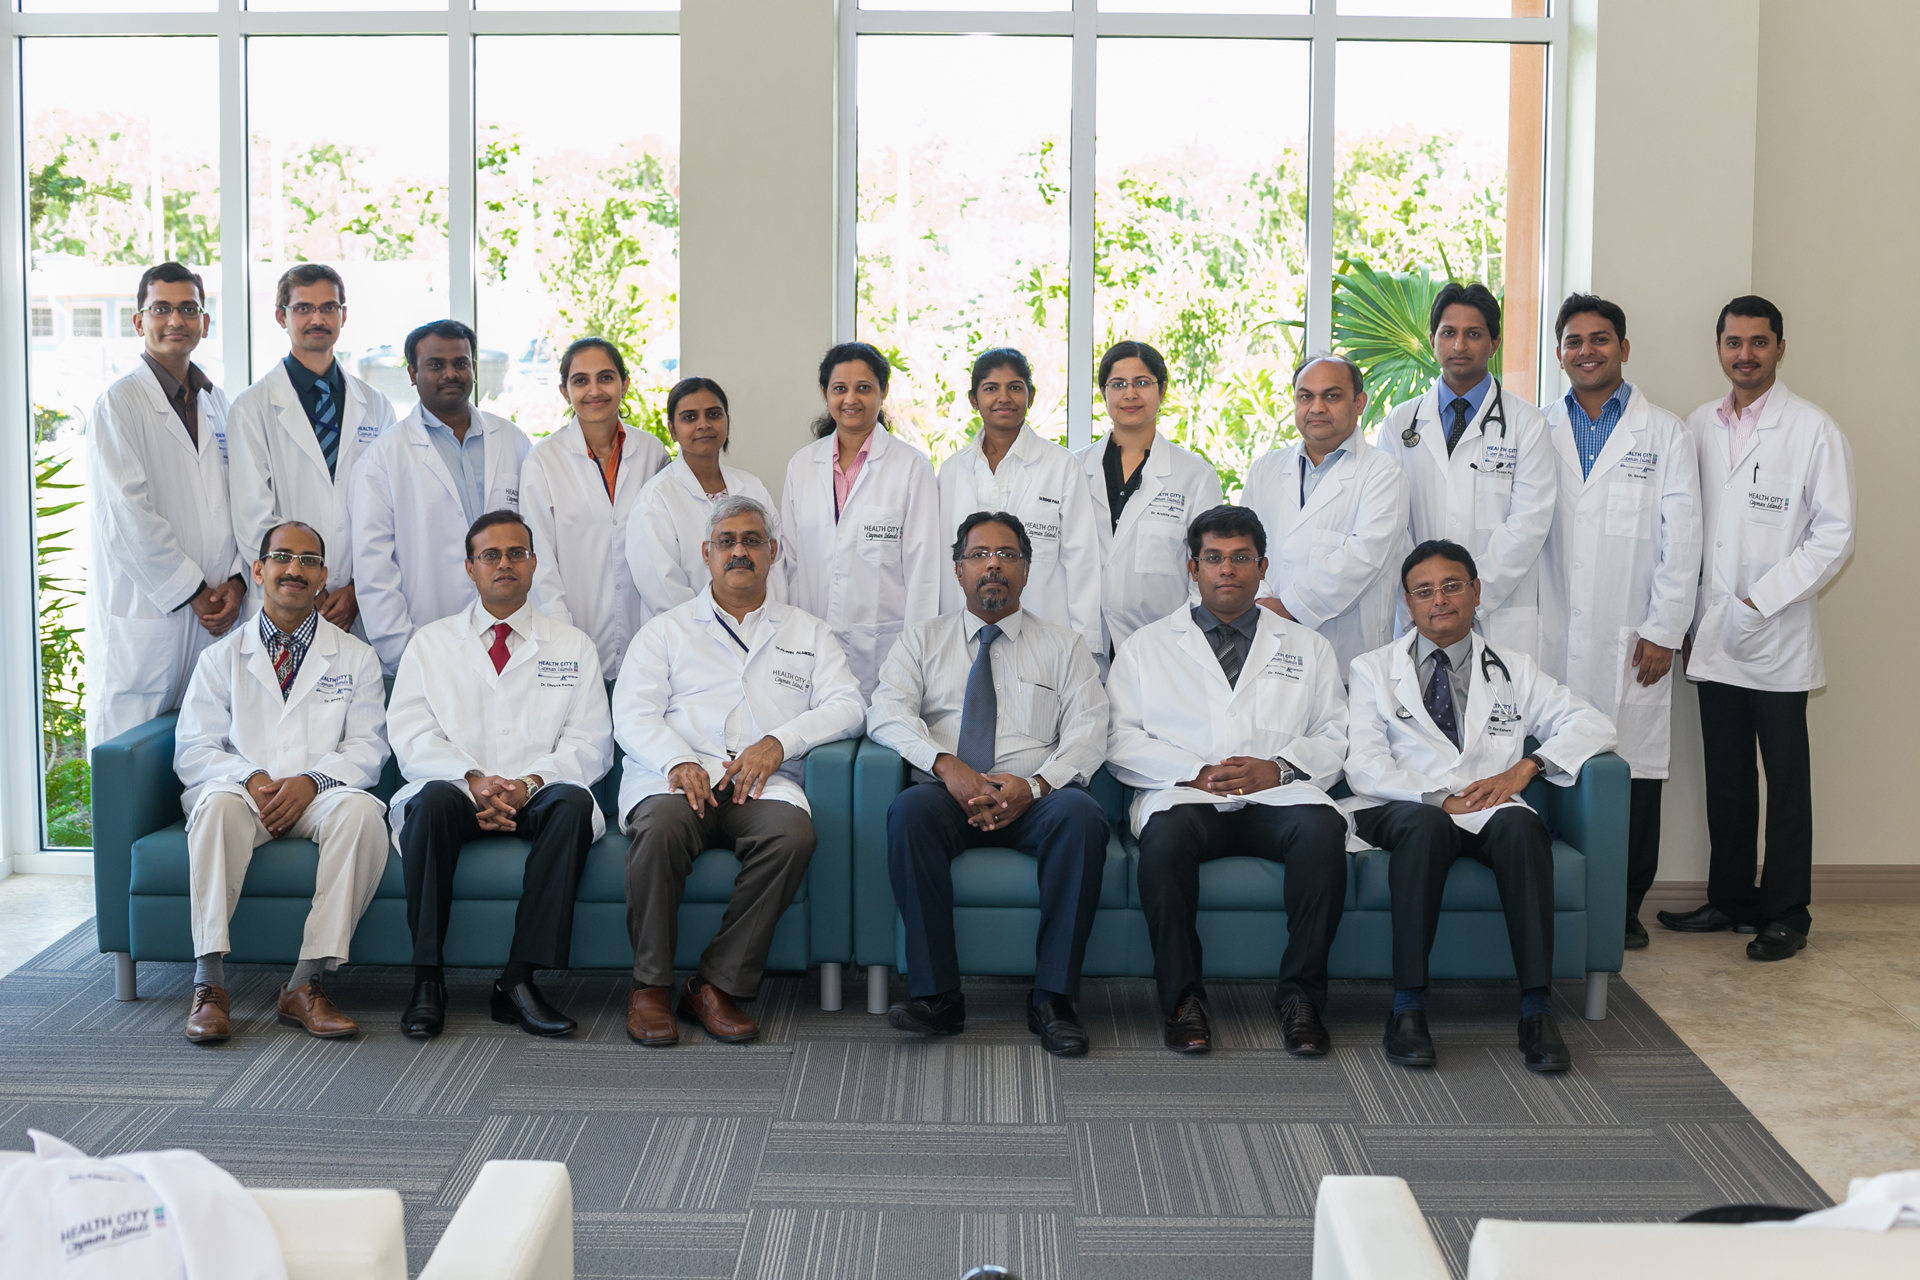 Health City Cayman Islands Medical Team